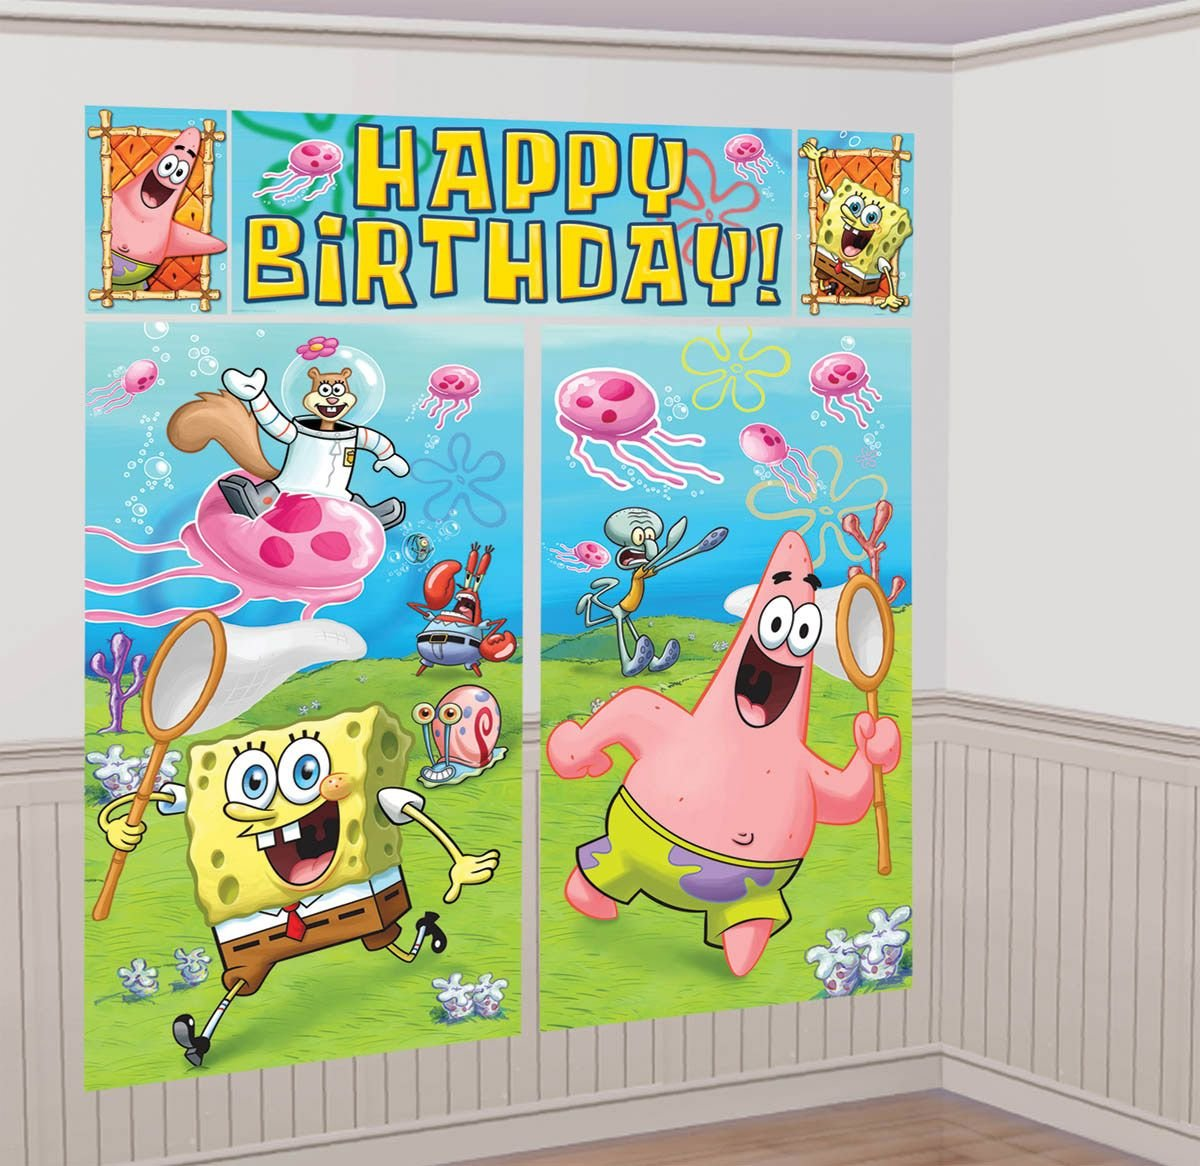 Deluxe Spongebob Squarepants Birthday Party Supplies Pack For 16 With Dinner and Dessert Plates Napkins Cups and Exclusive Pin Pineapple Swirls Tablecover Add-An-Age Banner Cutlery